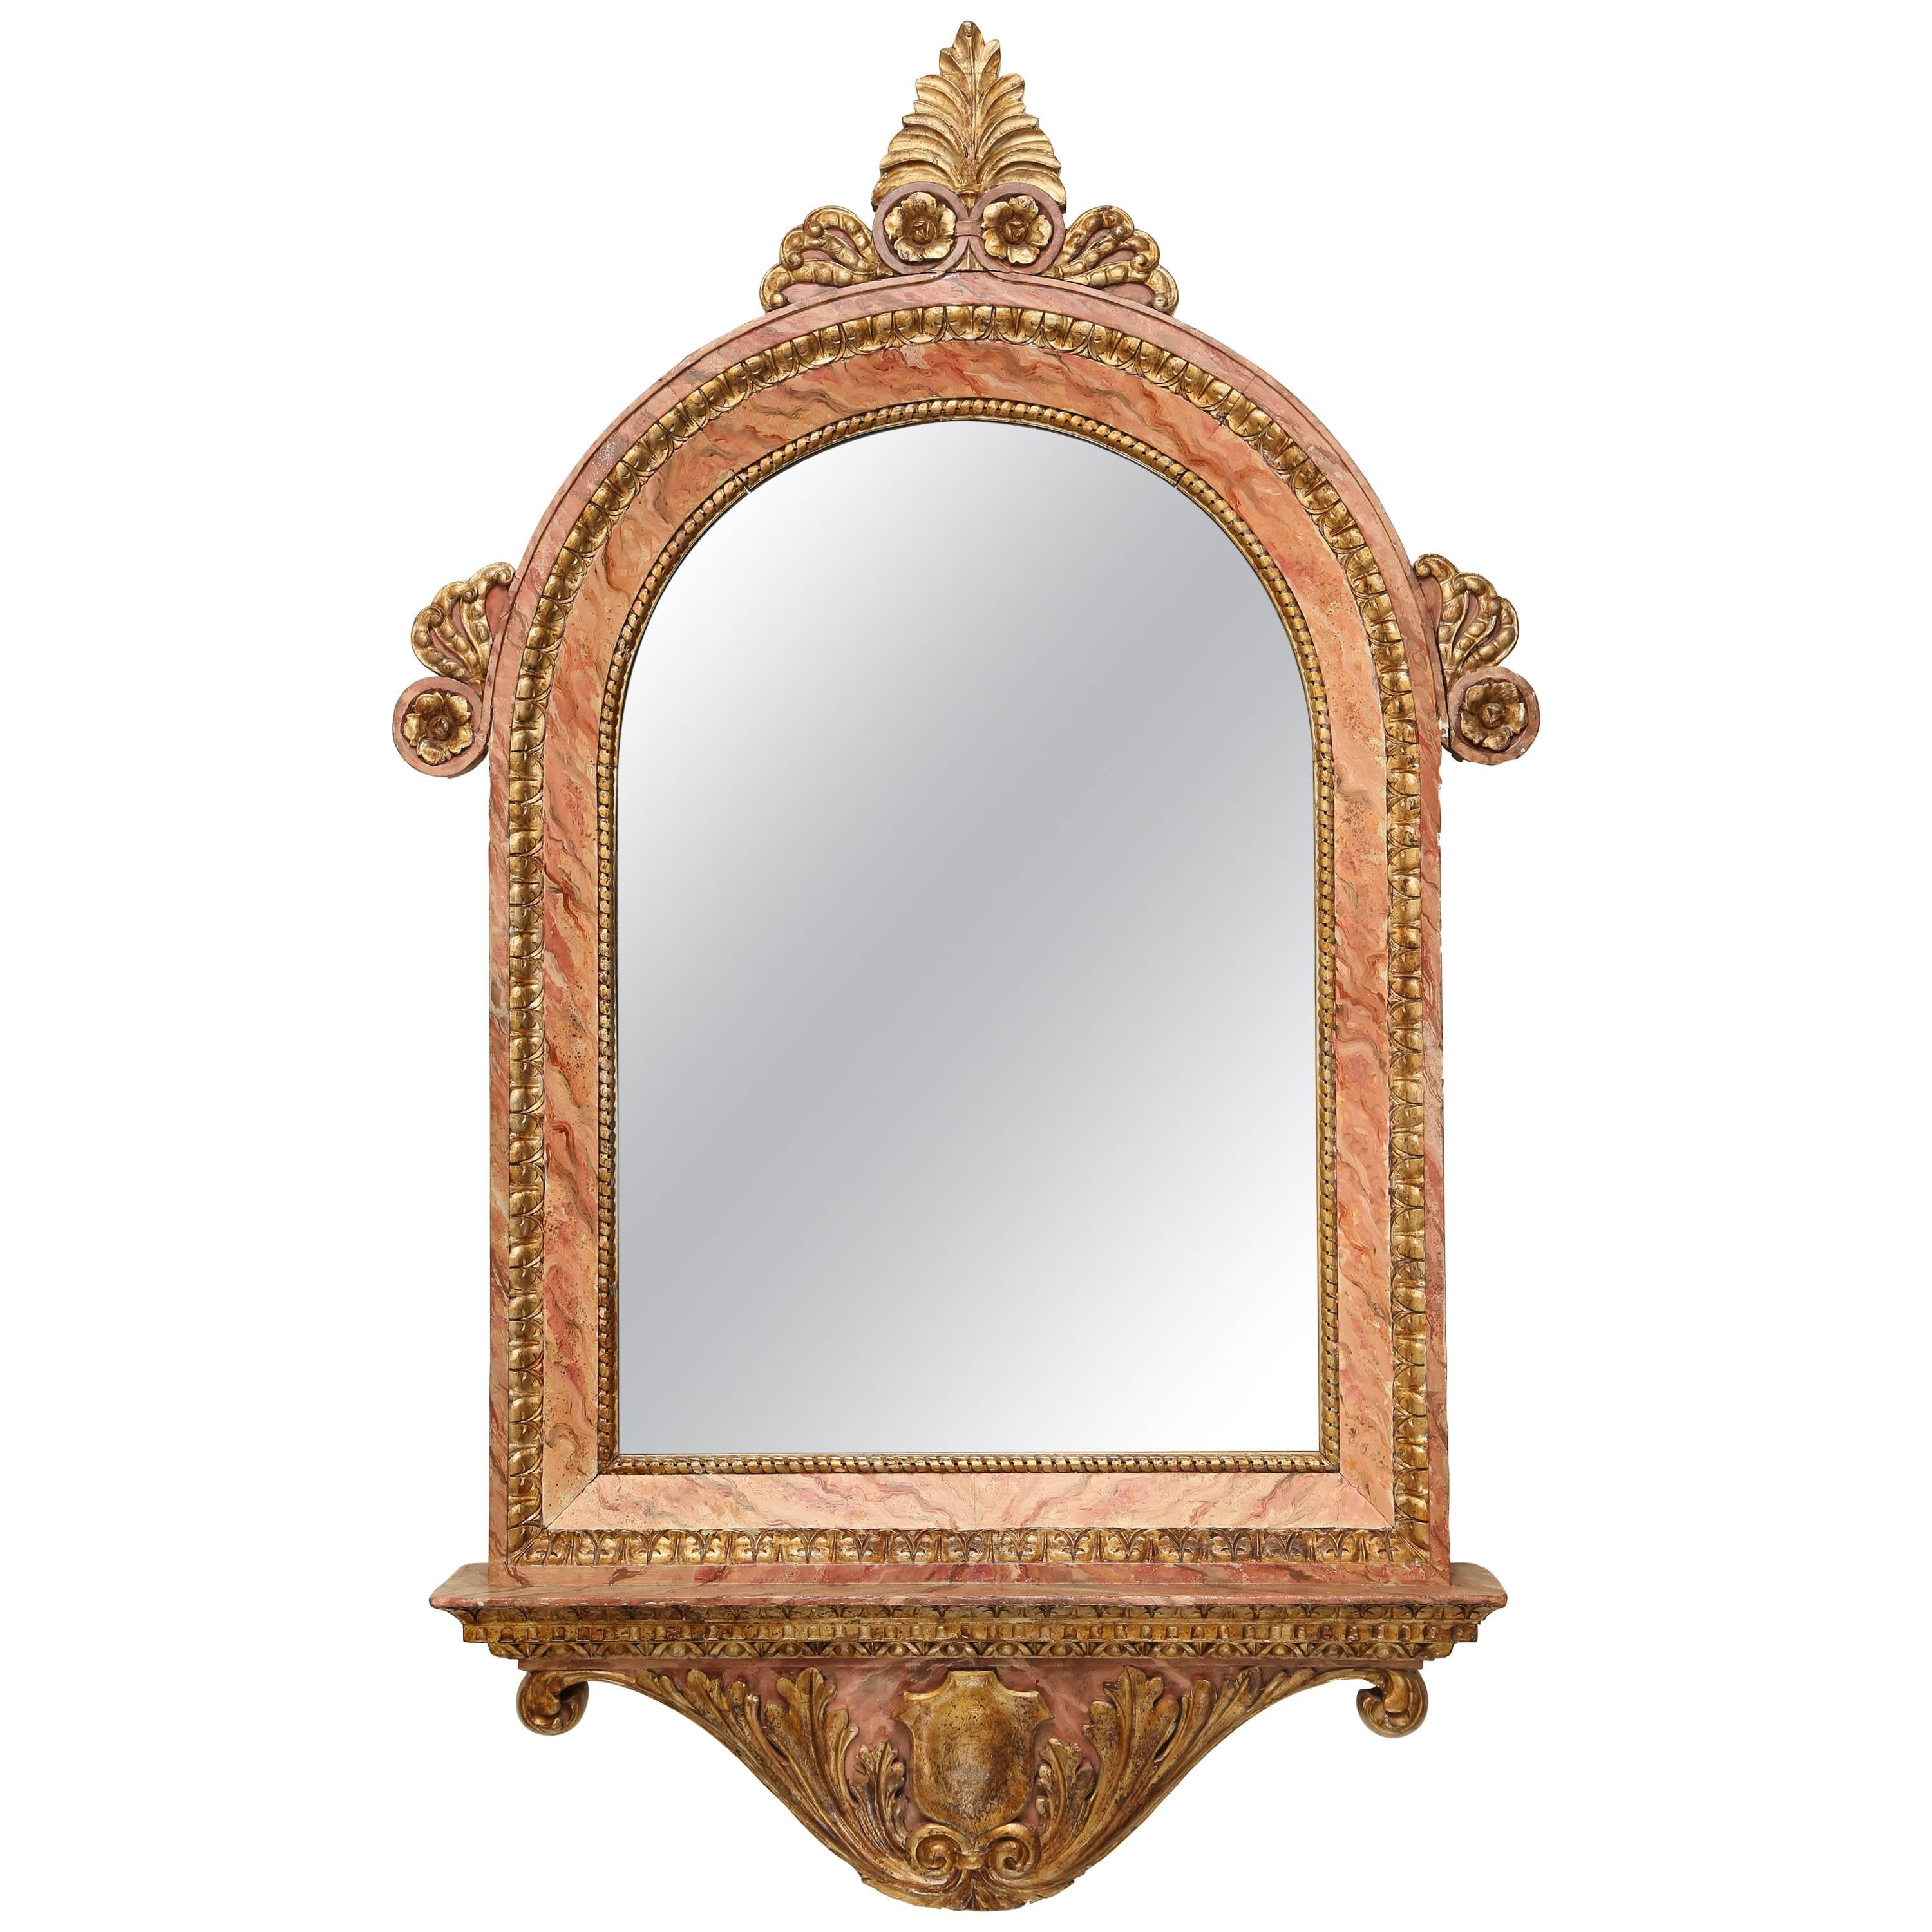 Antique Gilded and Faux Painted Architectural Mirror